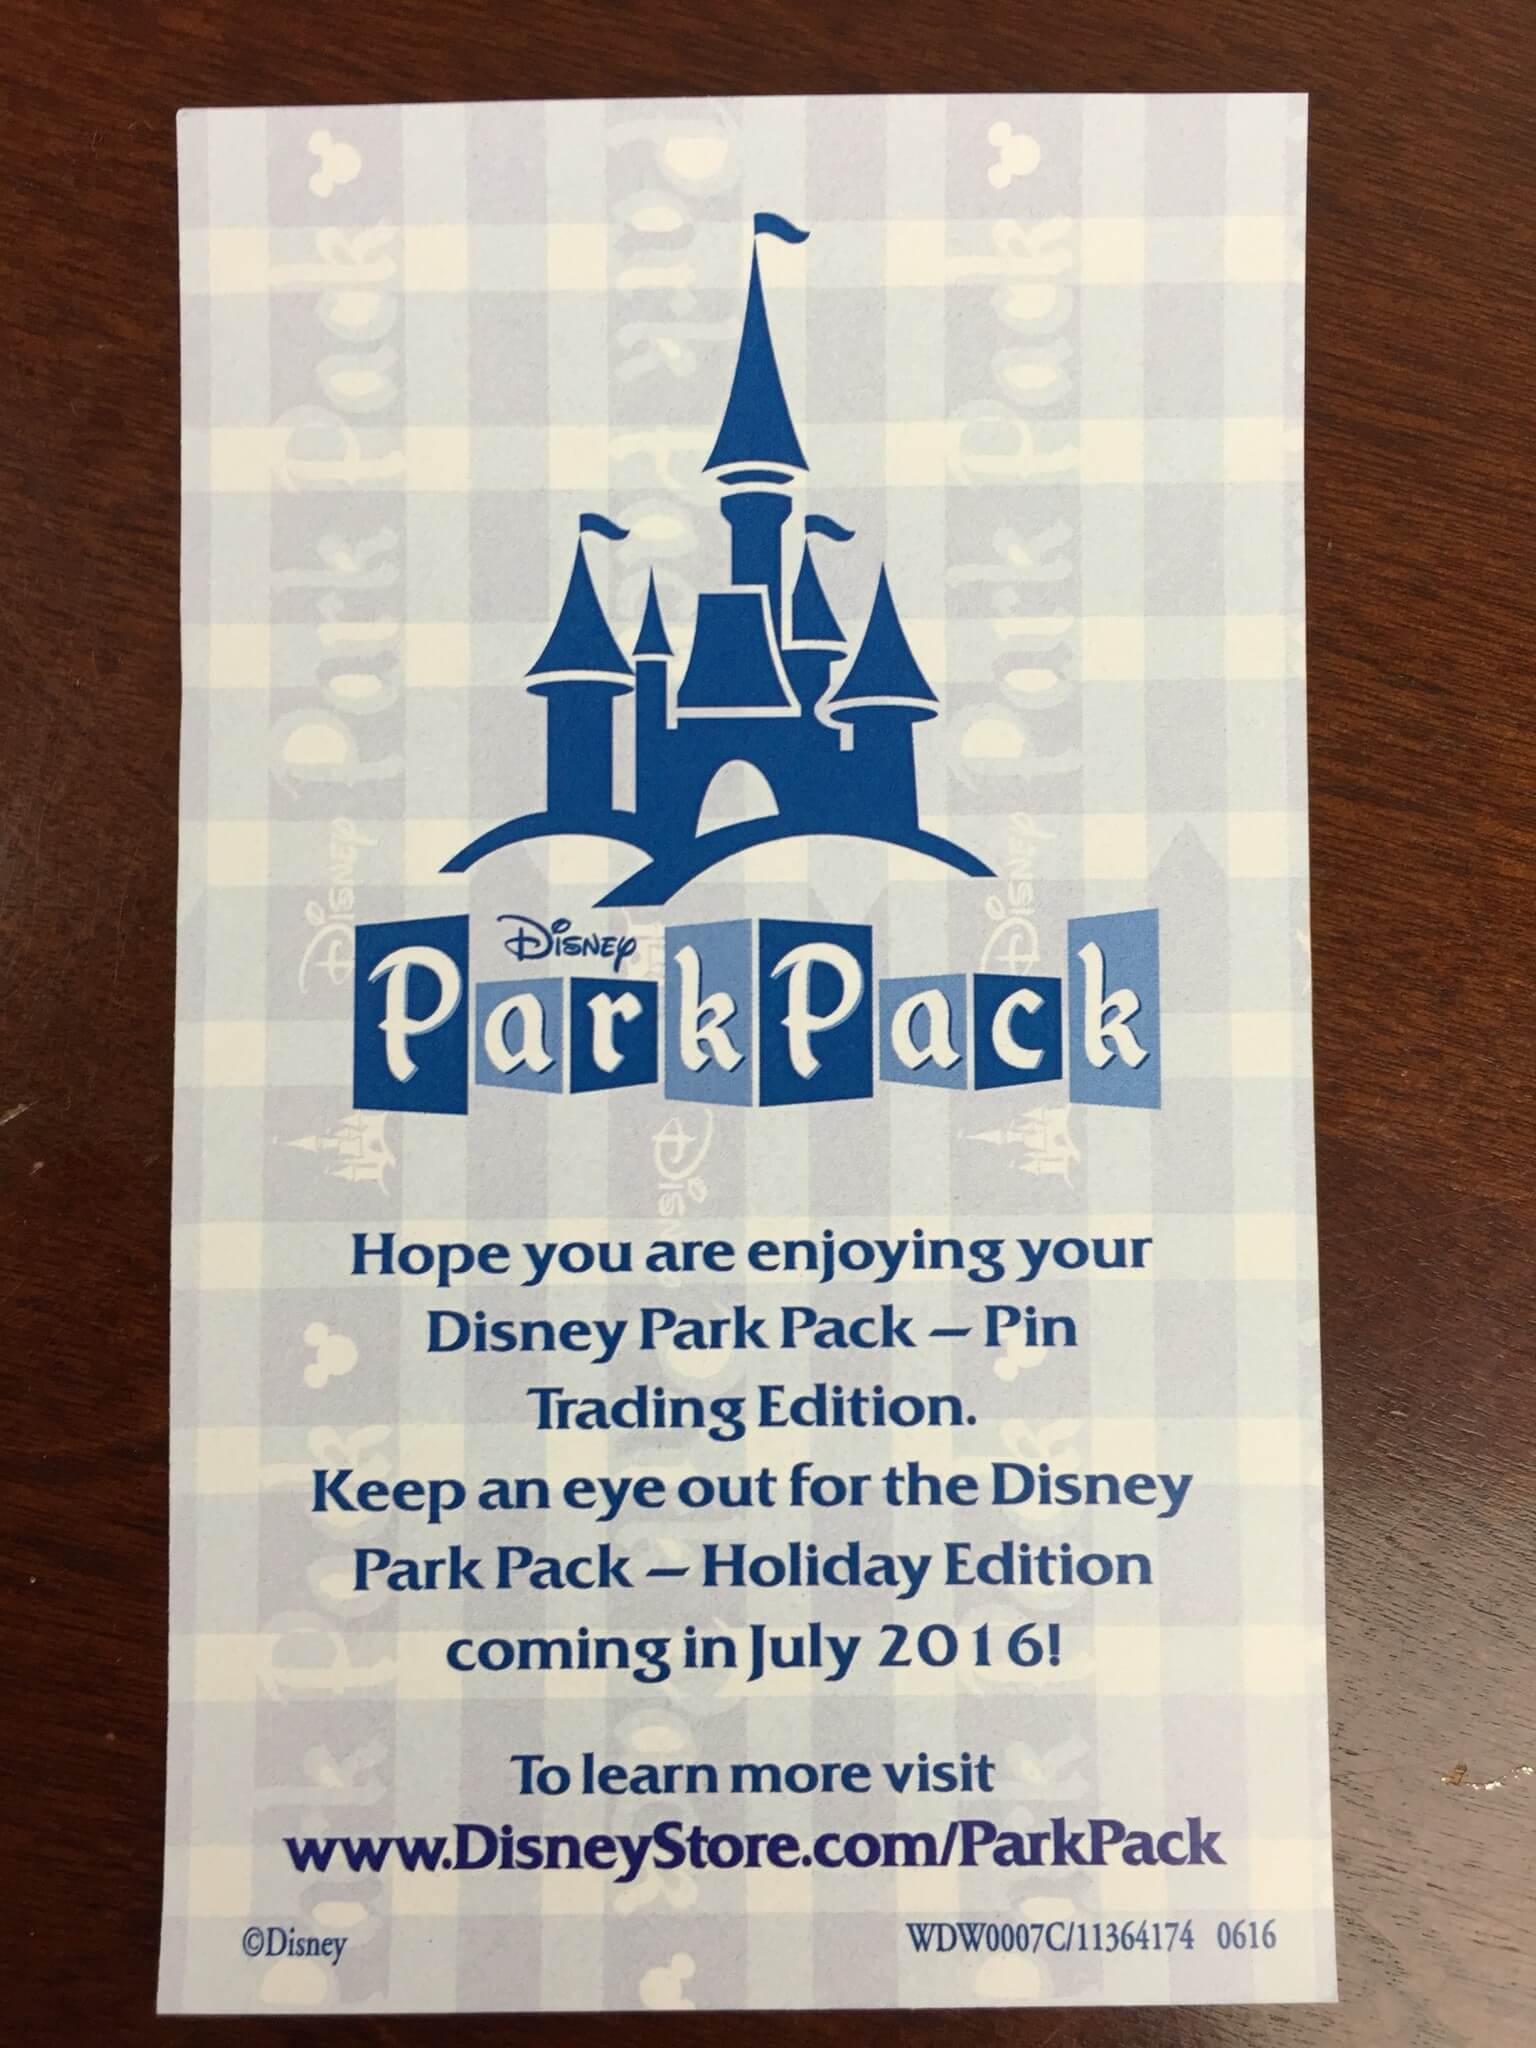 disney park pack pin trading box june 2016 IMG_2097